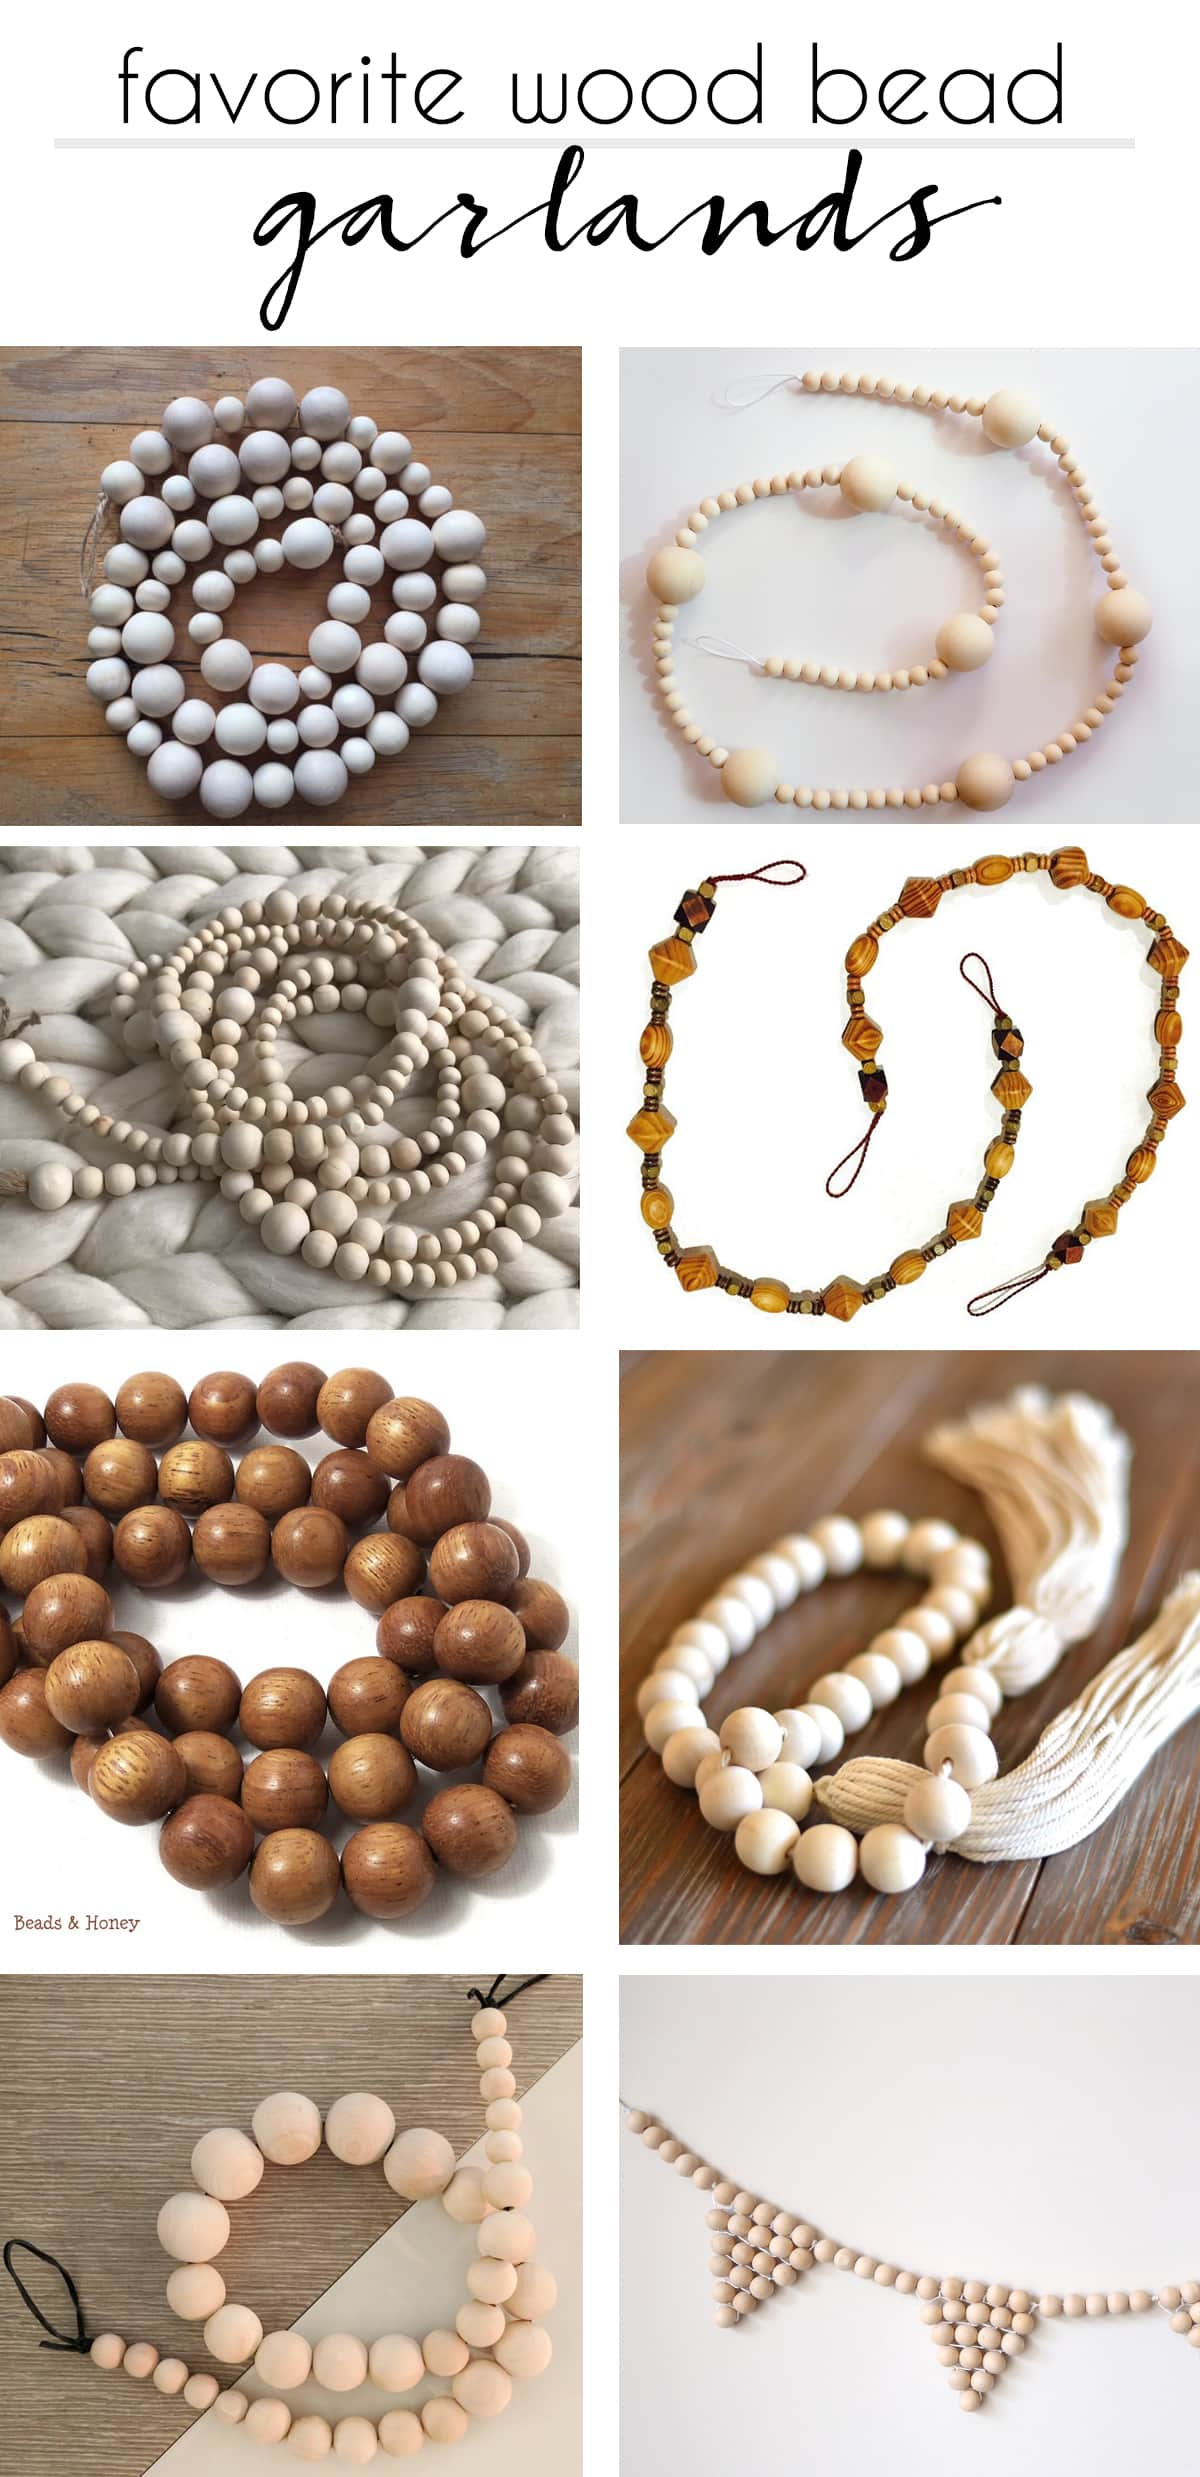 here is a round-up of my favorite handmade wood bead garlands on Etsy